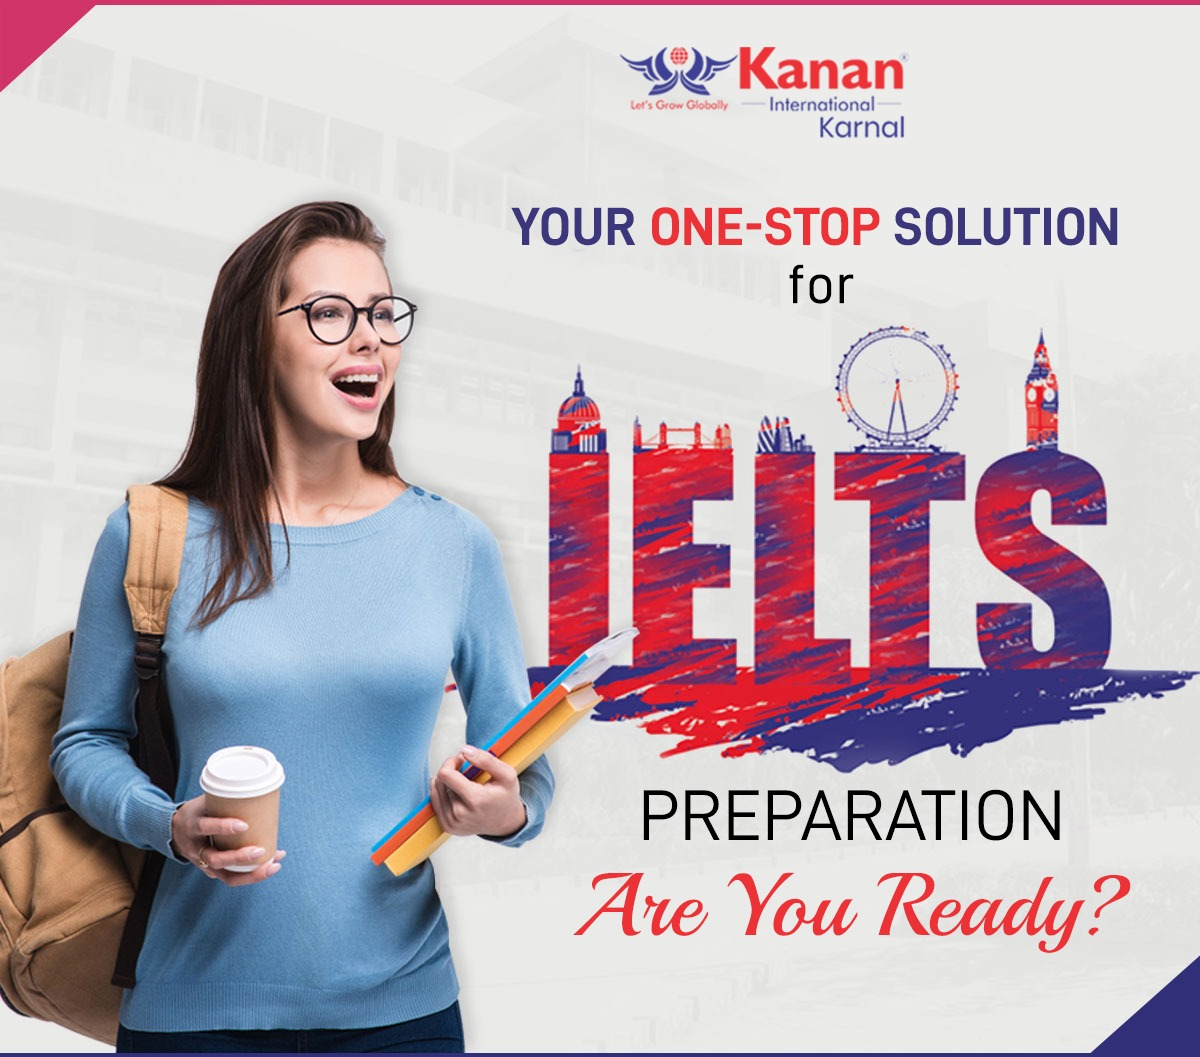 How to score more in IELTS writing module? | Best IELTS Coaching Institute in Karnal, Haryana - Kanan karnal Image